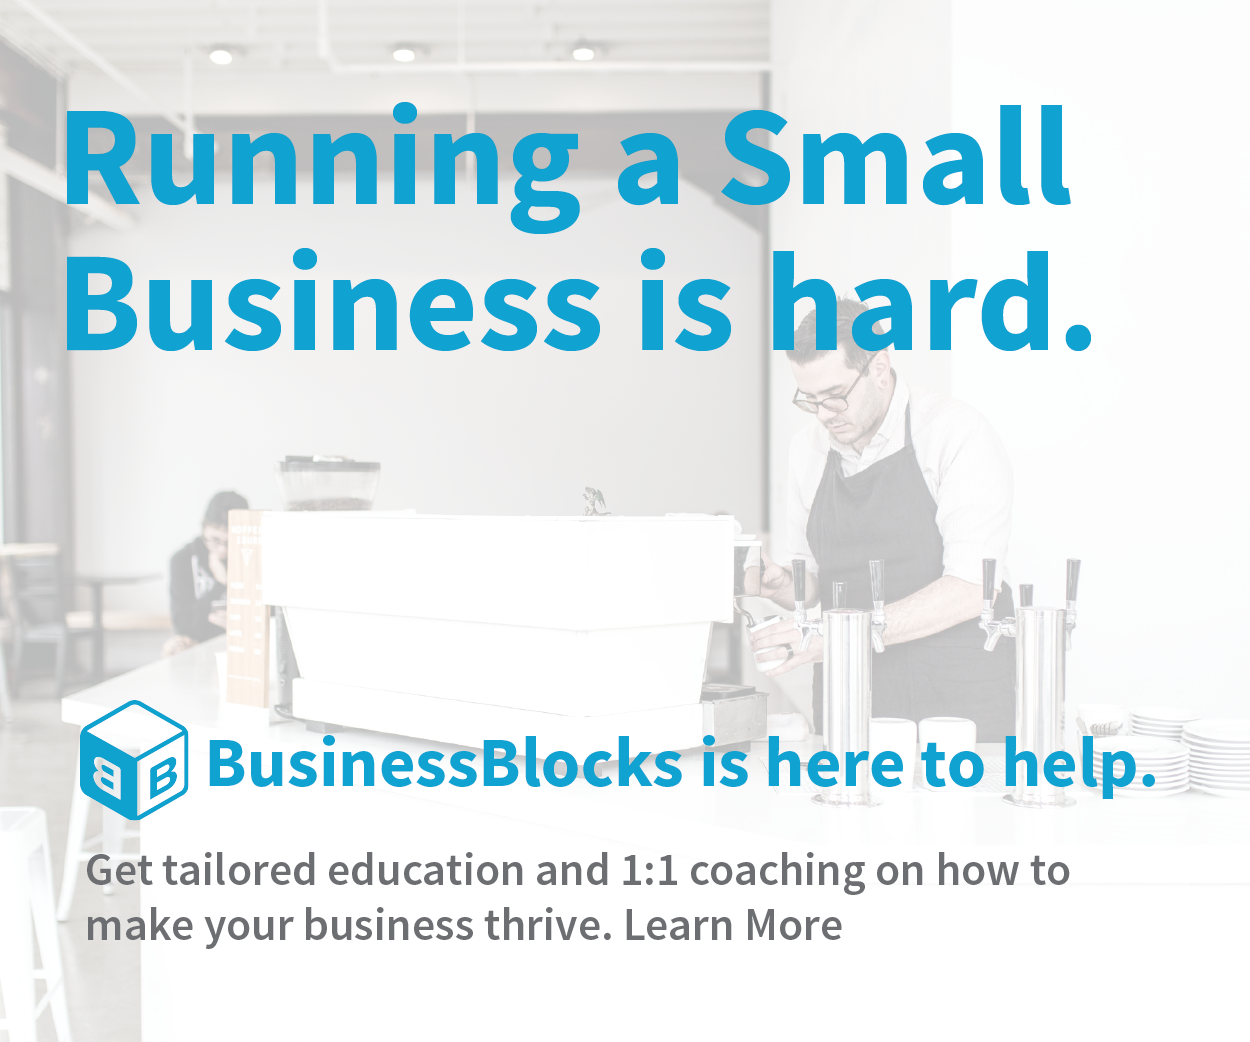 Business Blocks